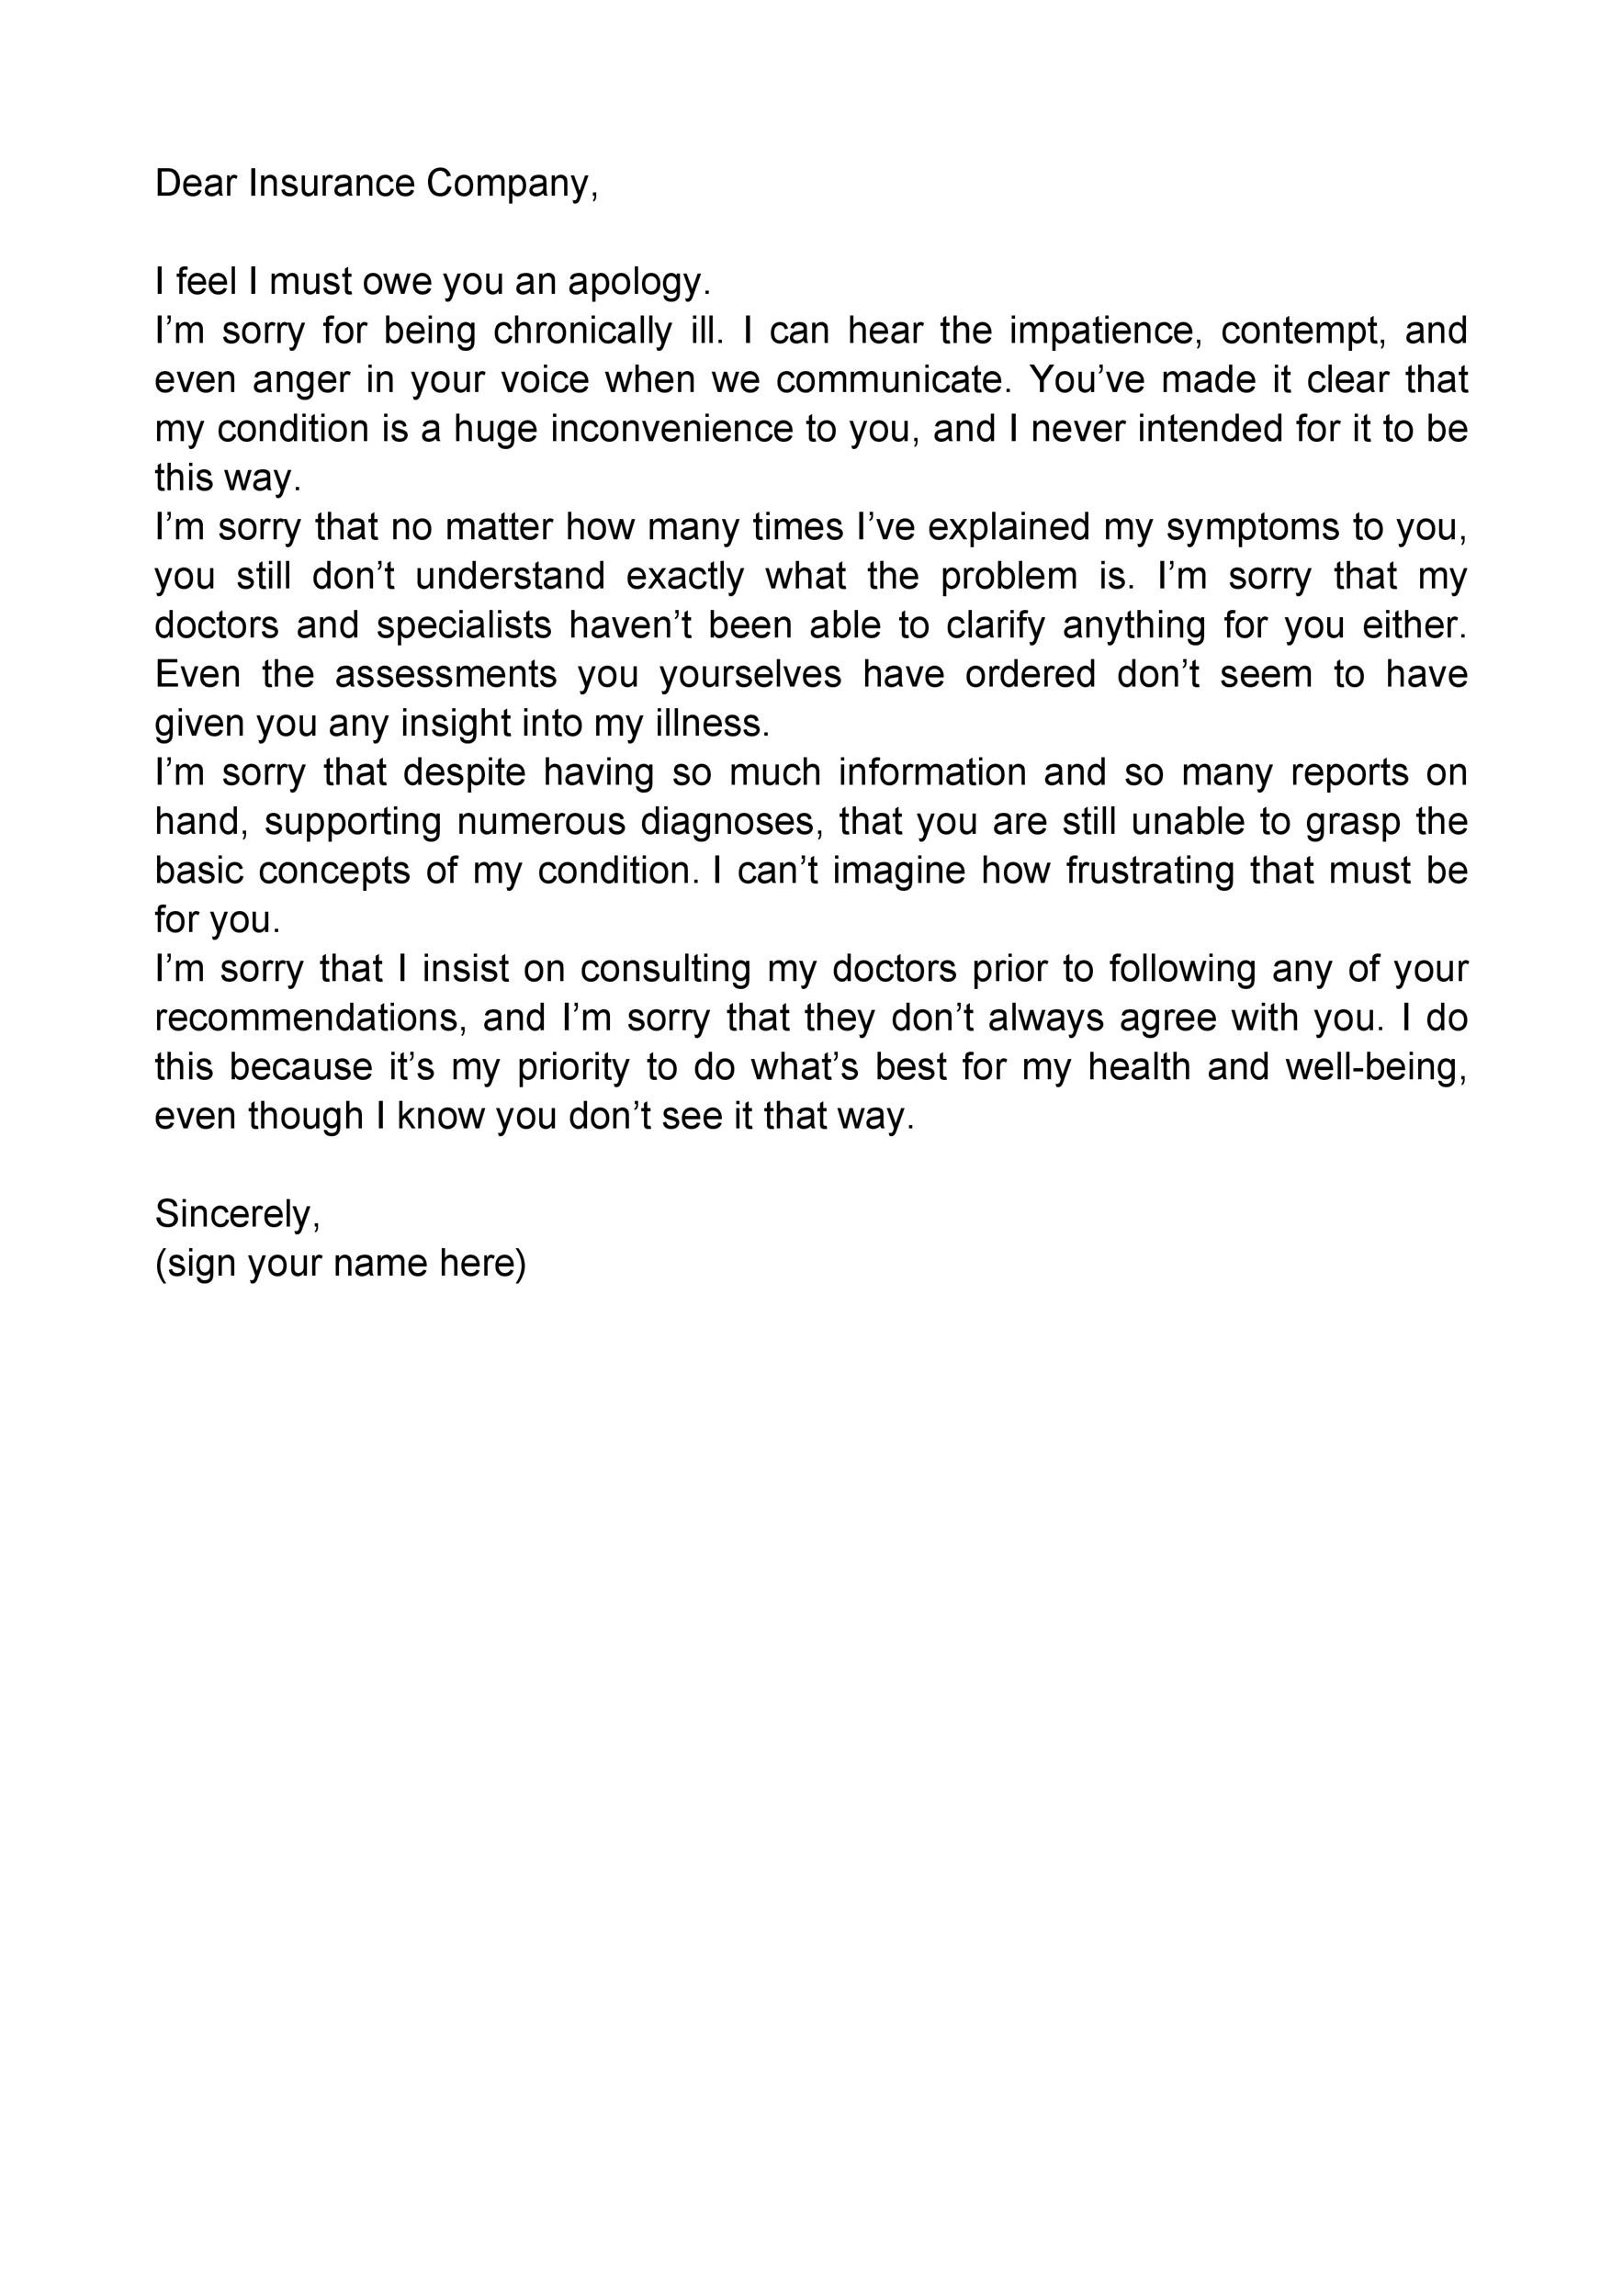 Free apology letter 20